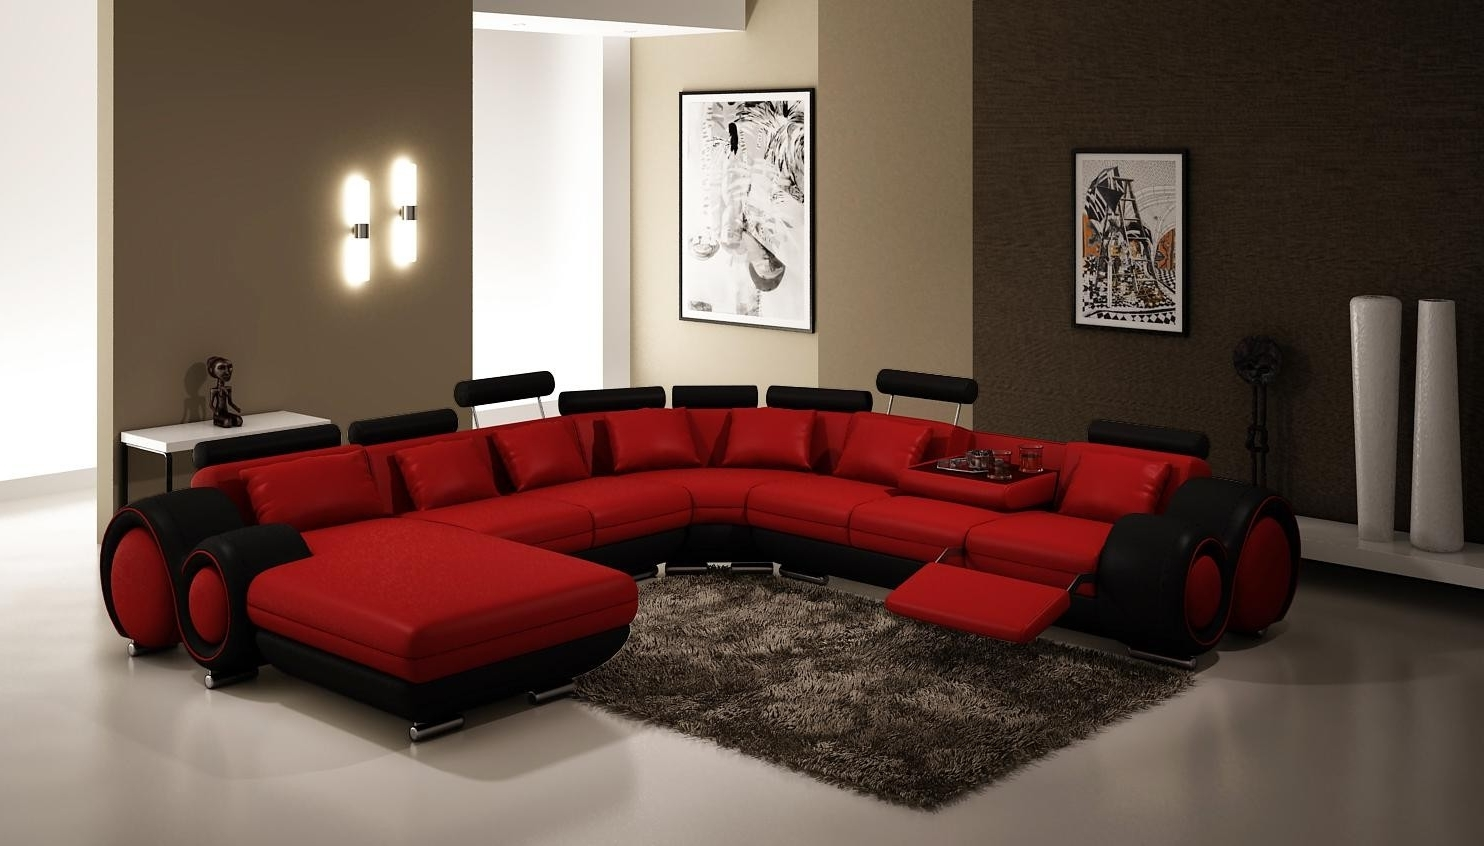 Popular Furniture 4084 Contemporary Red And Black Sectional Sofa Throughout Red Black Sectional Sofas (View 6 of 15)